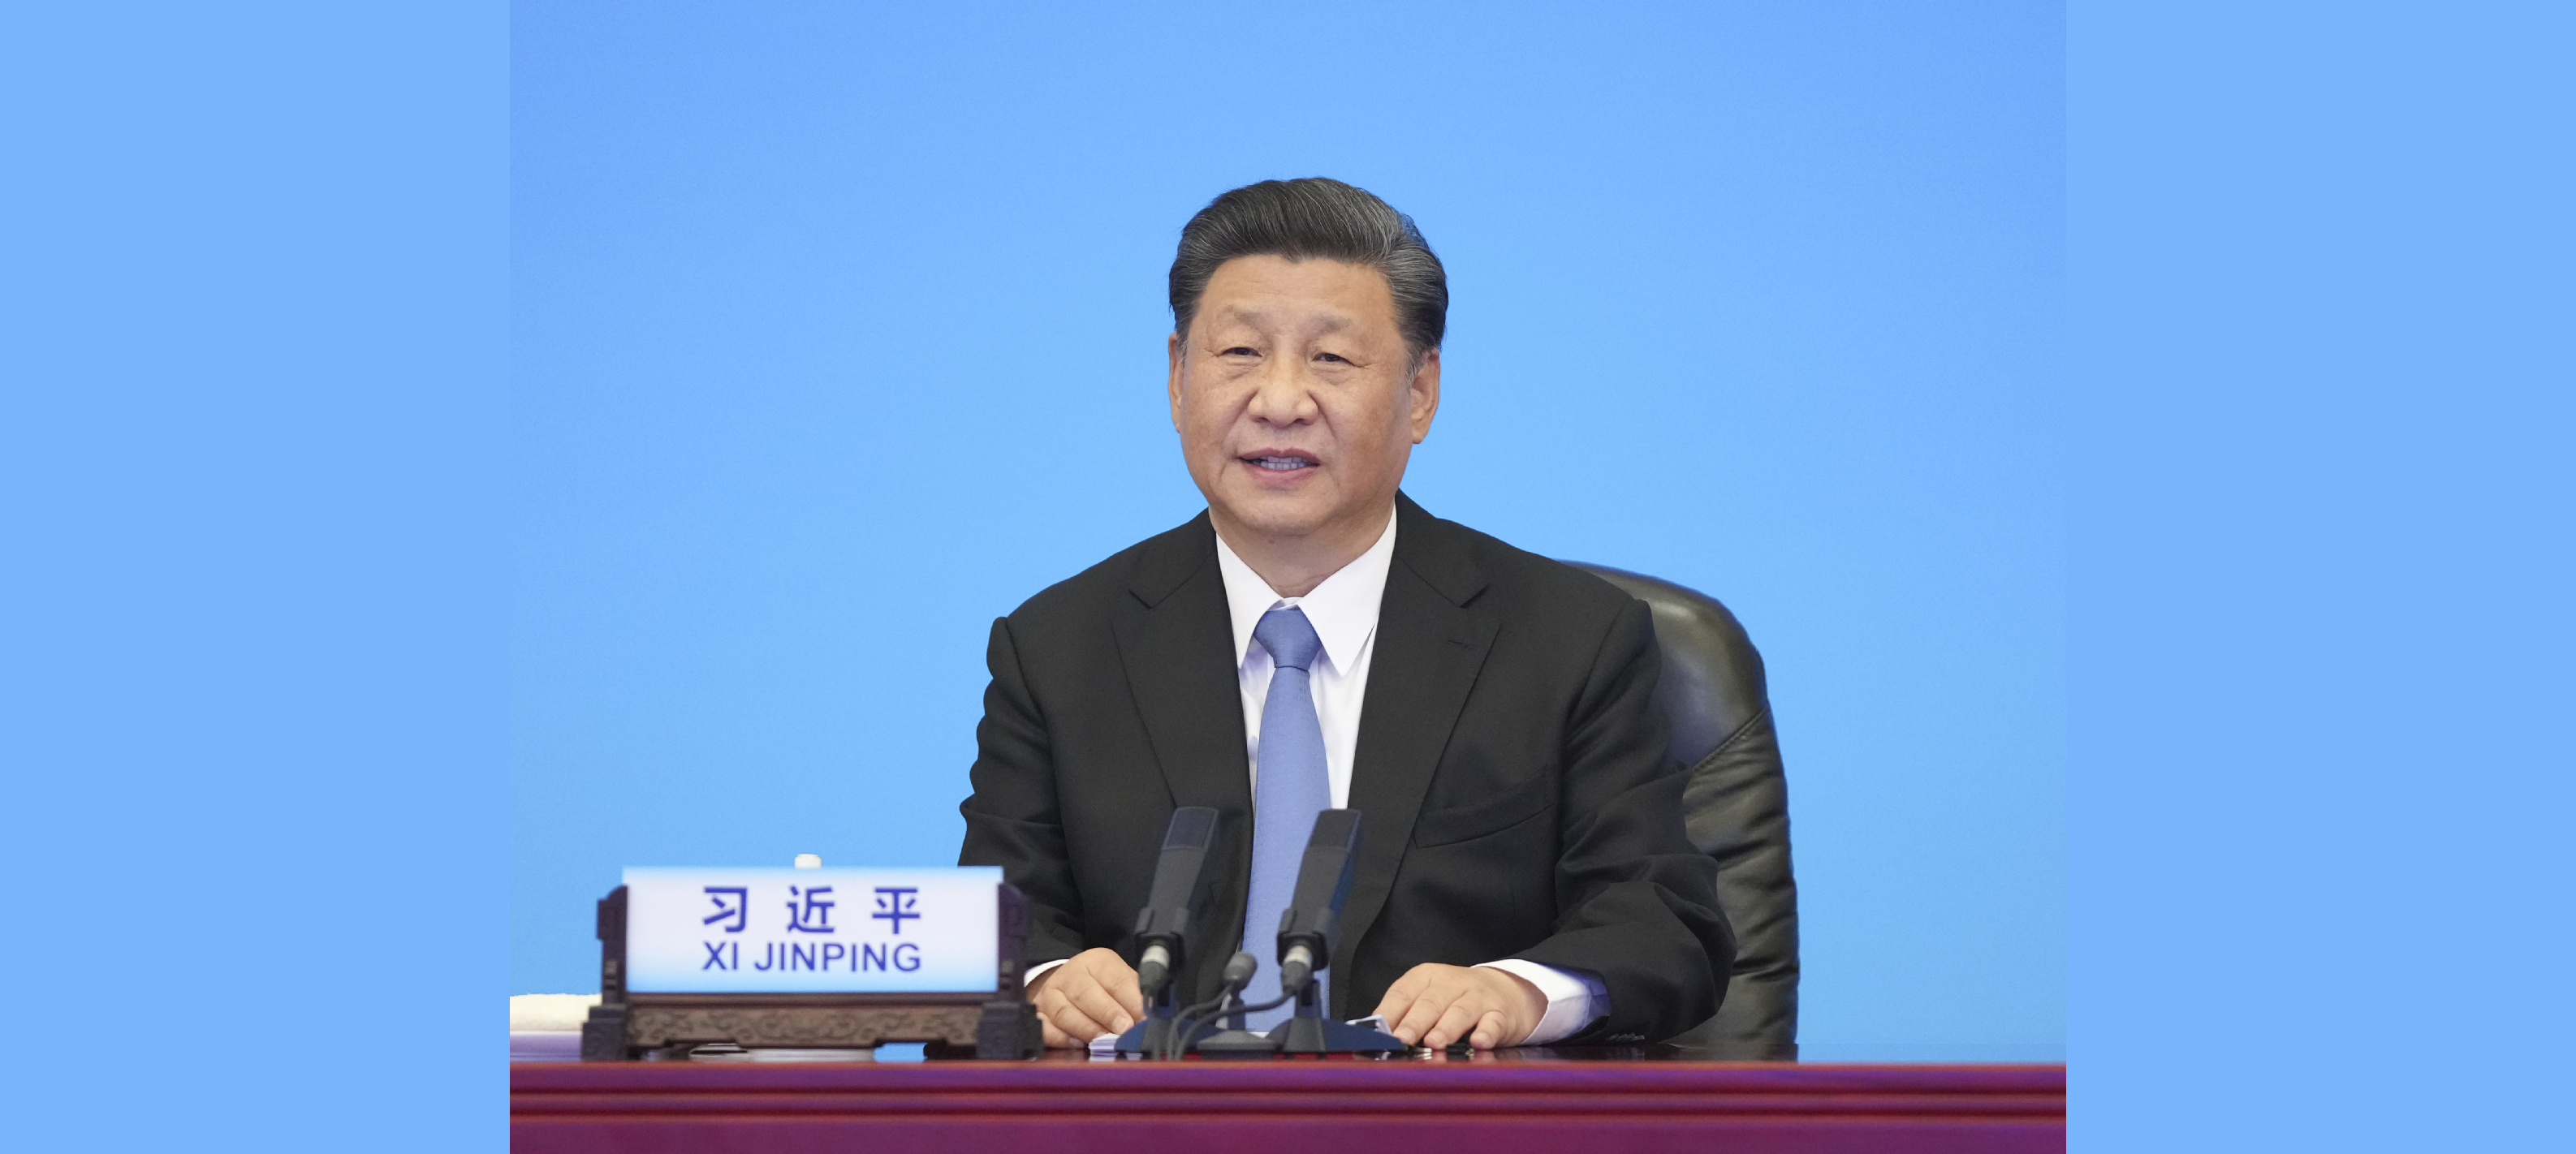 Xi urges world political parties to shoulder responsibility for pursuit of people's wellbeing, progress of mankind